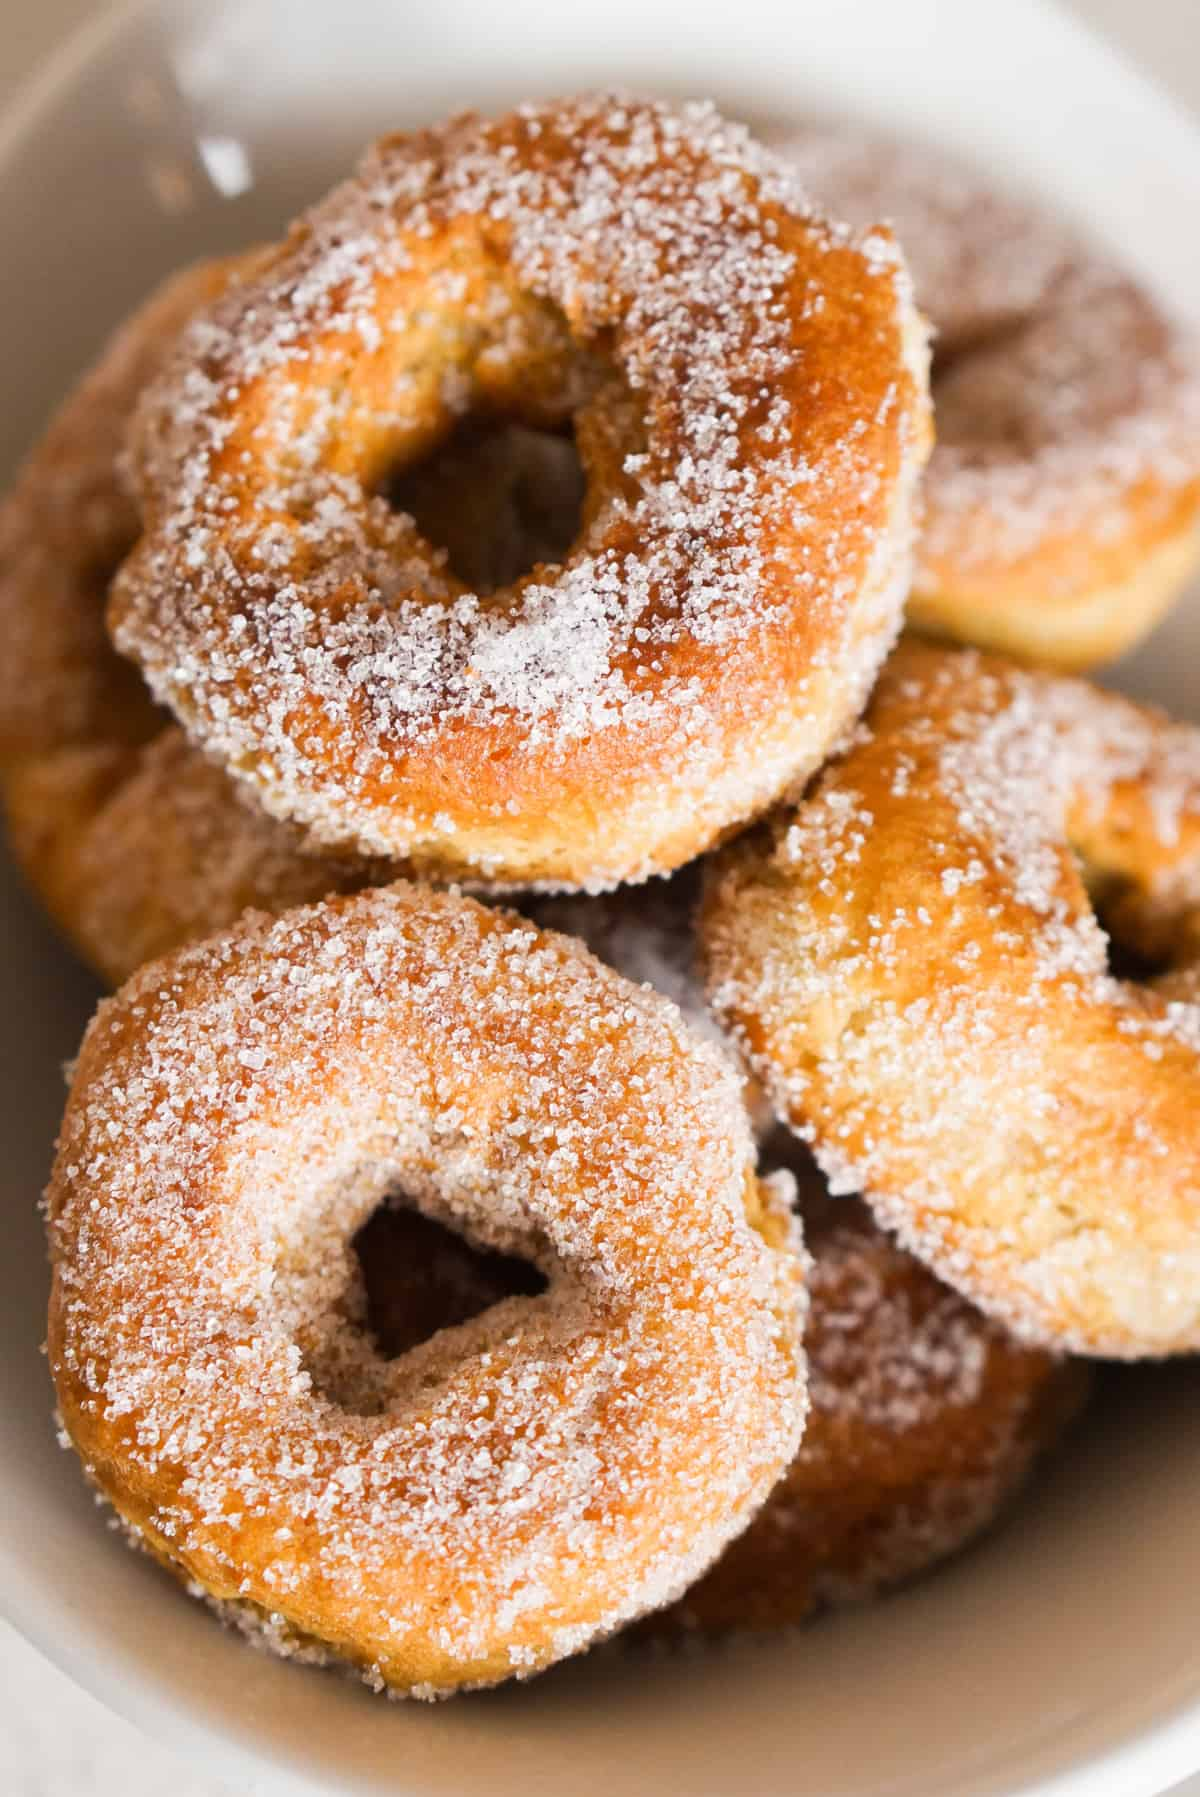 Sugar covered fried donuts in a white bowl.